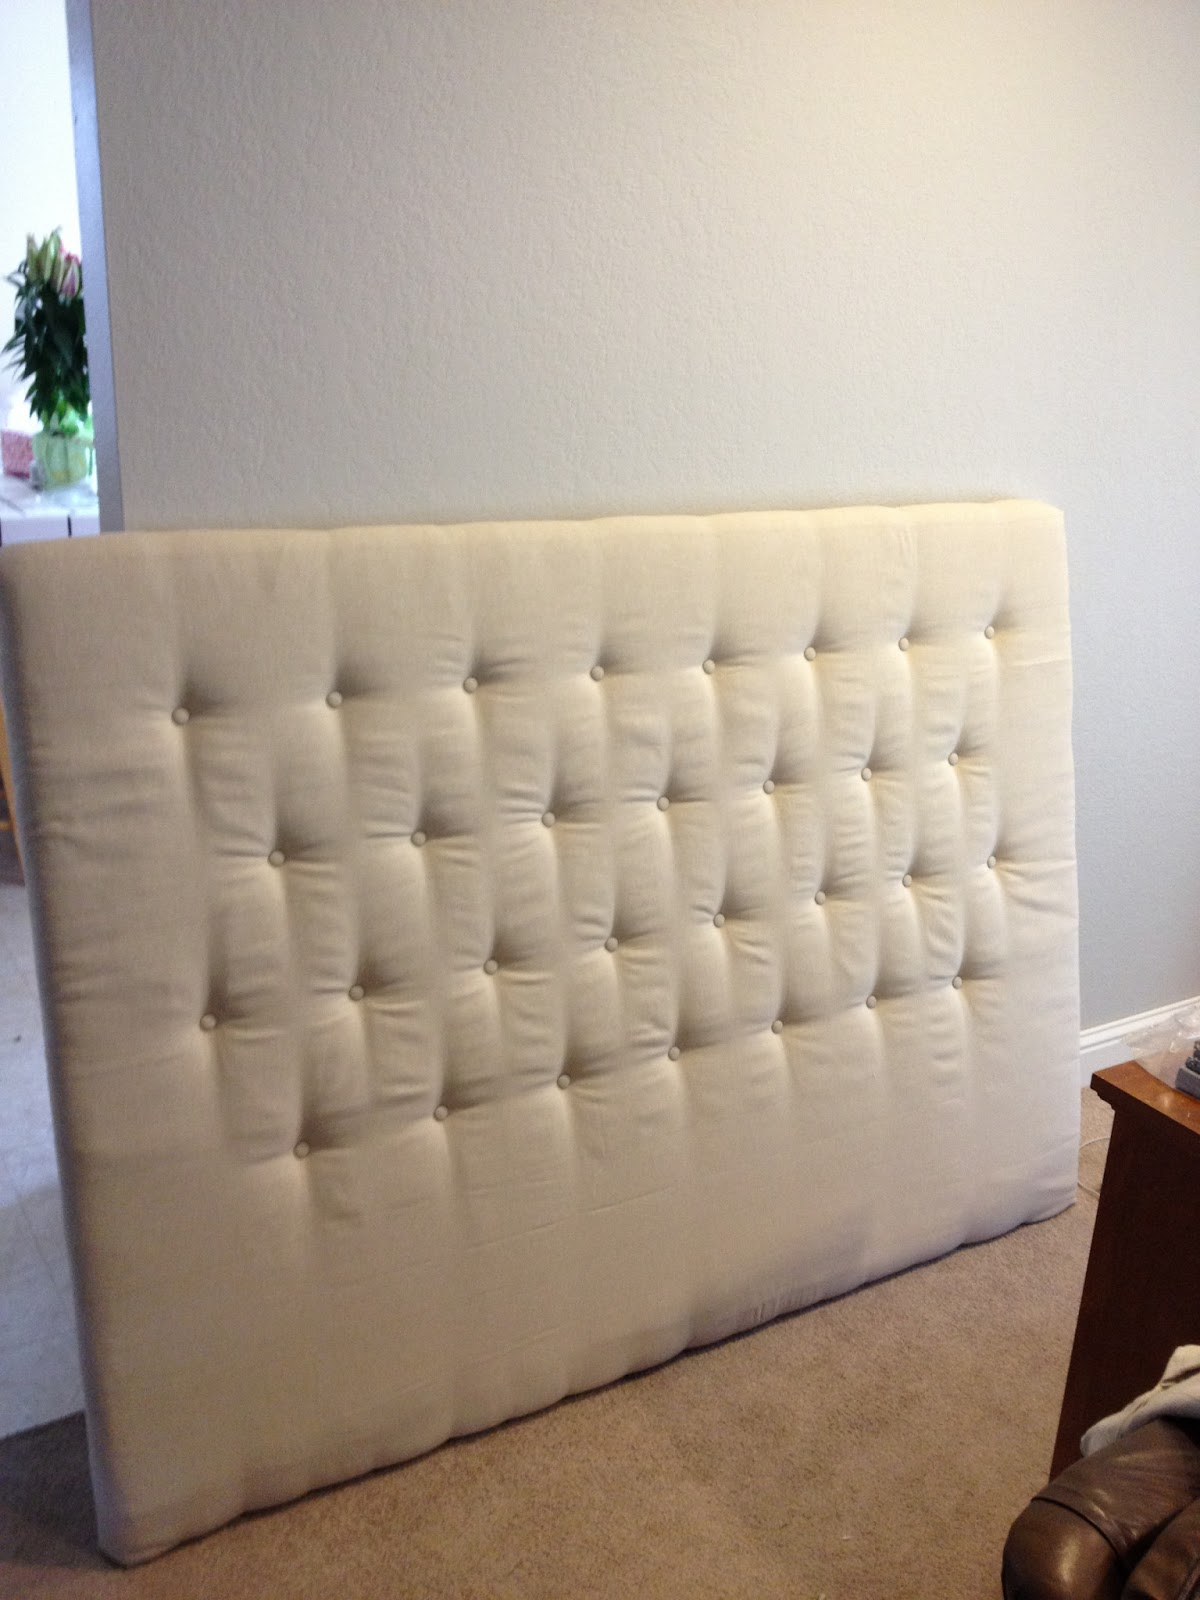 Design Upholstered Headboards Diy money hip mamas diy upholstered headboard with nailhead detailed arms monday august 19 2013